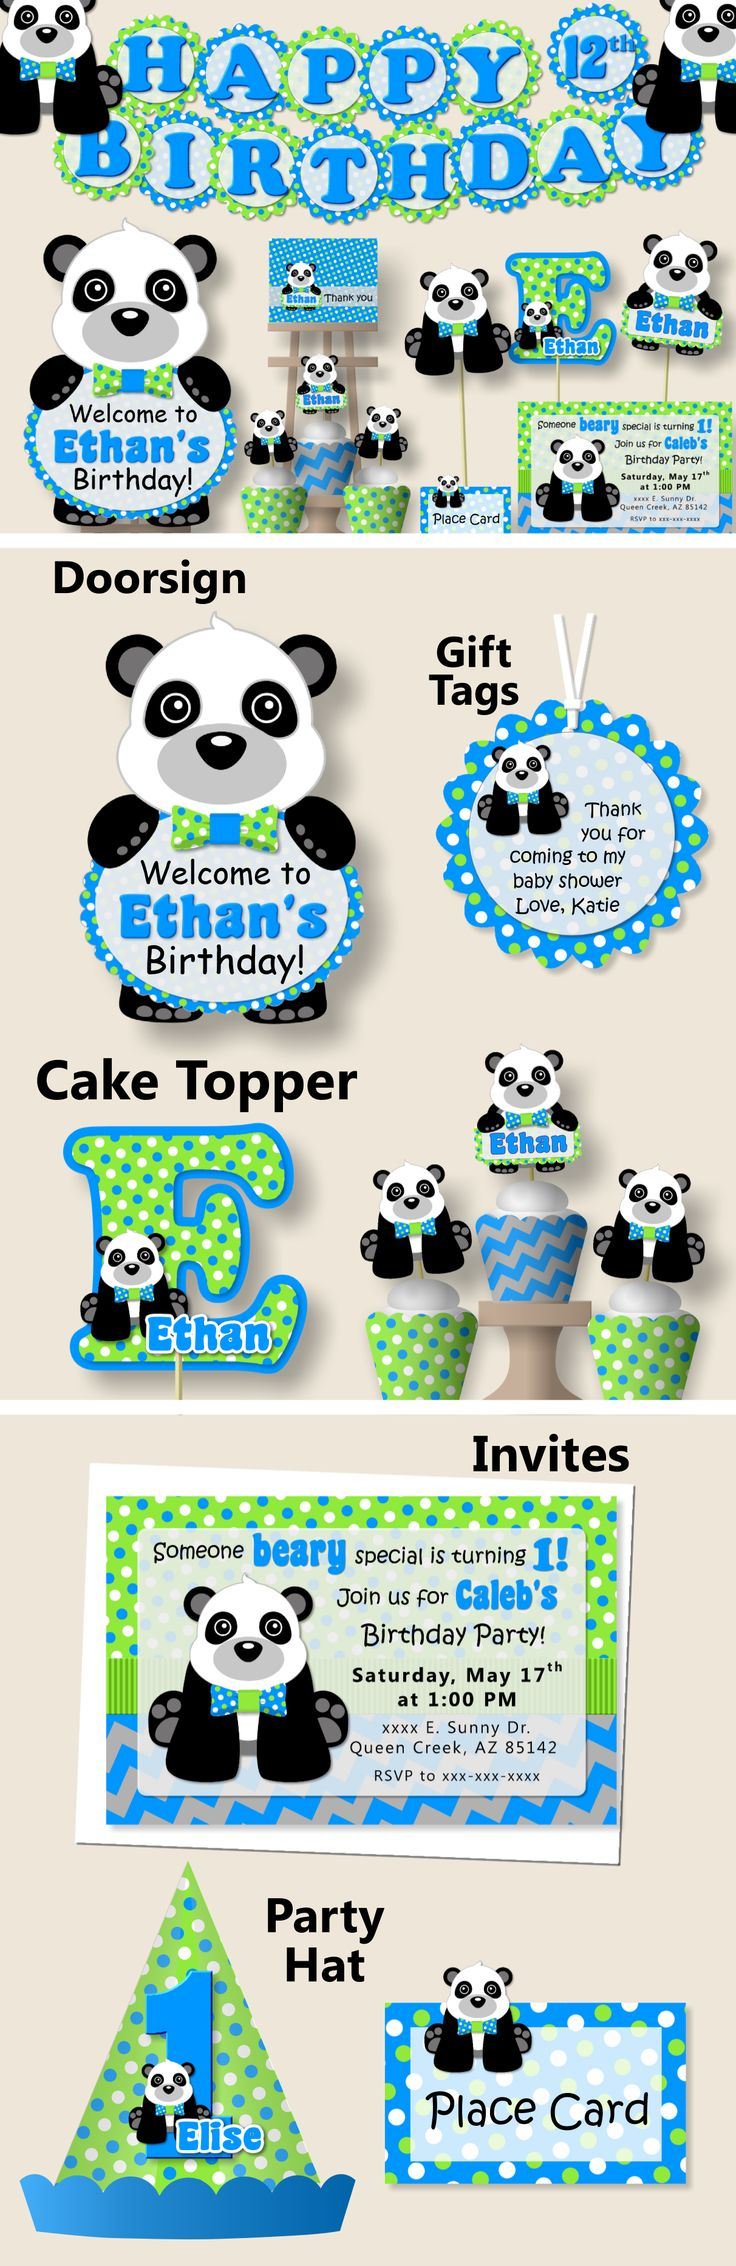 Panda Birthday Party or Panda Baby Shower Decorations - Party Package, Invitation, Banner, Party Hat - Blue and Green #bcpaperdesigns